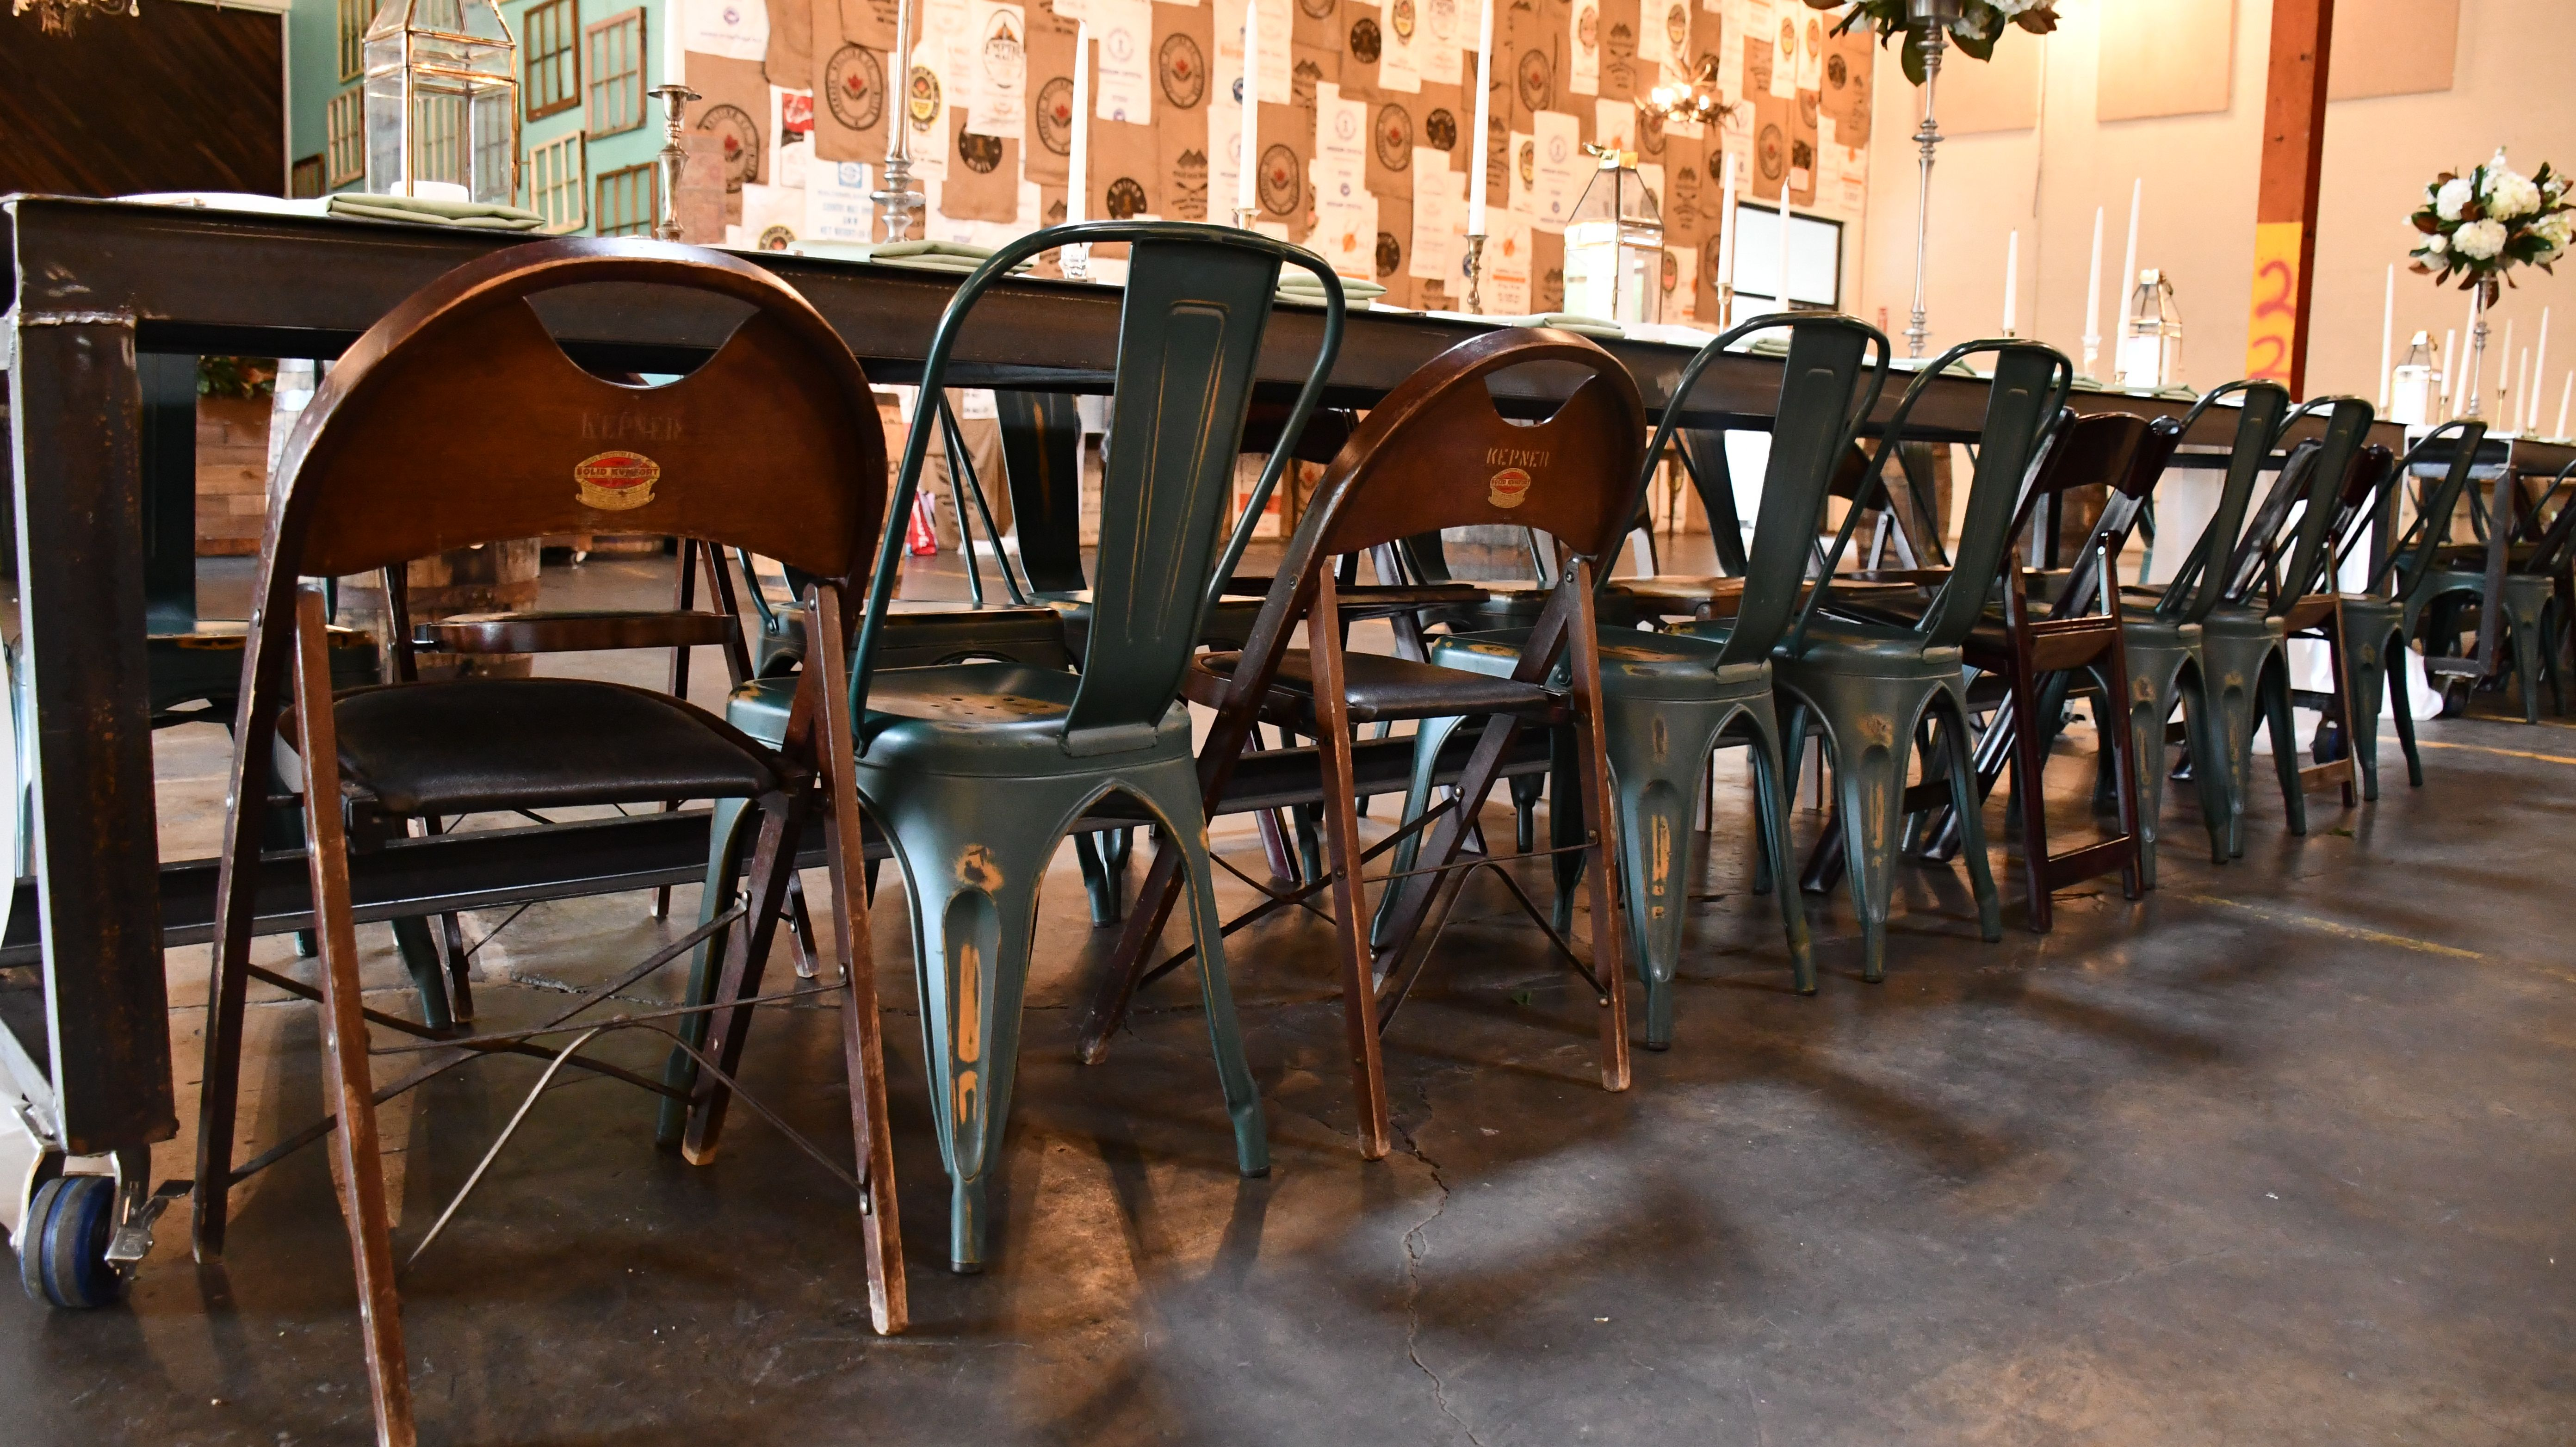 Kepner folding chairs with black cushions mix and match